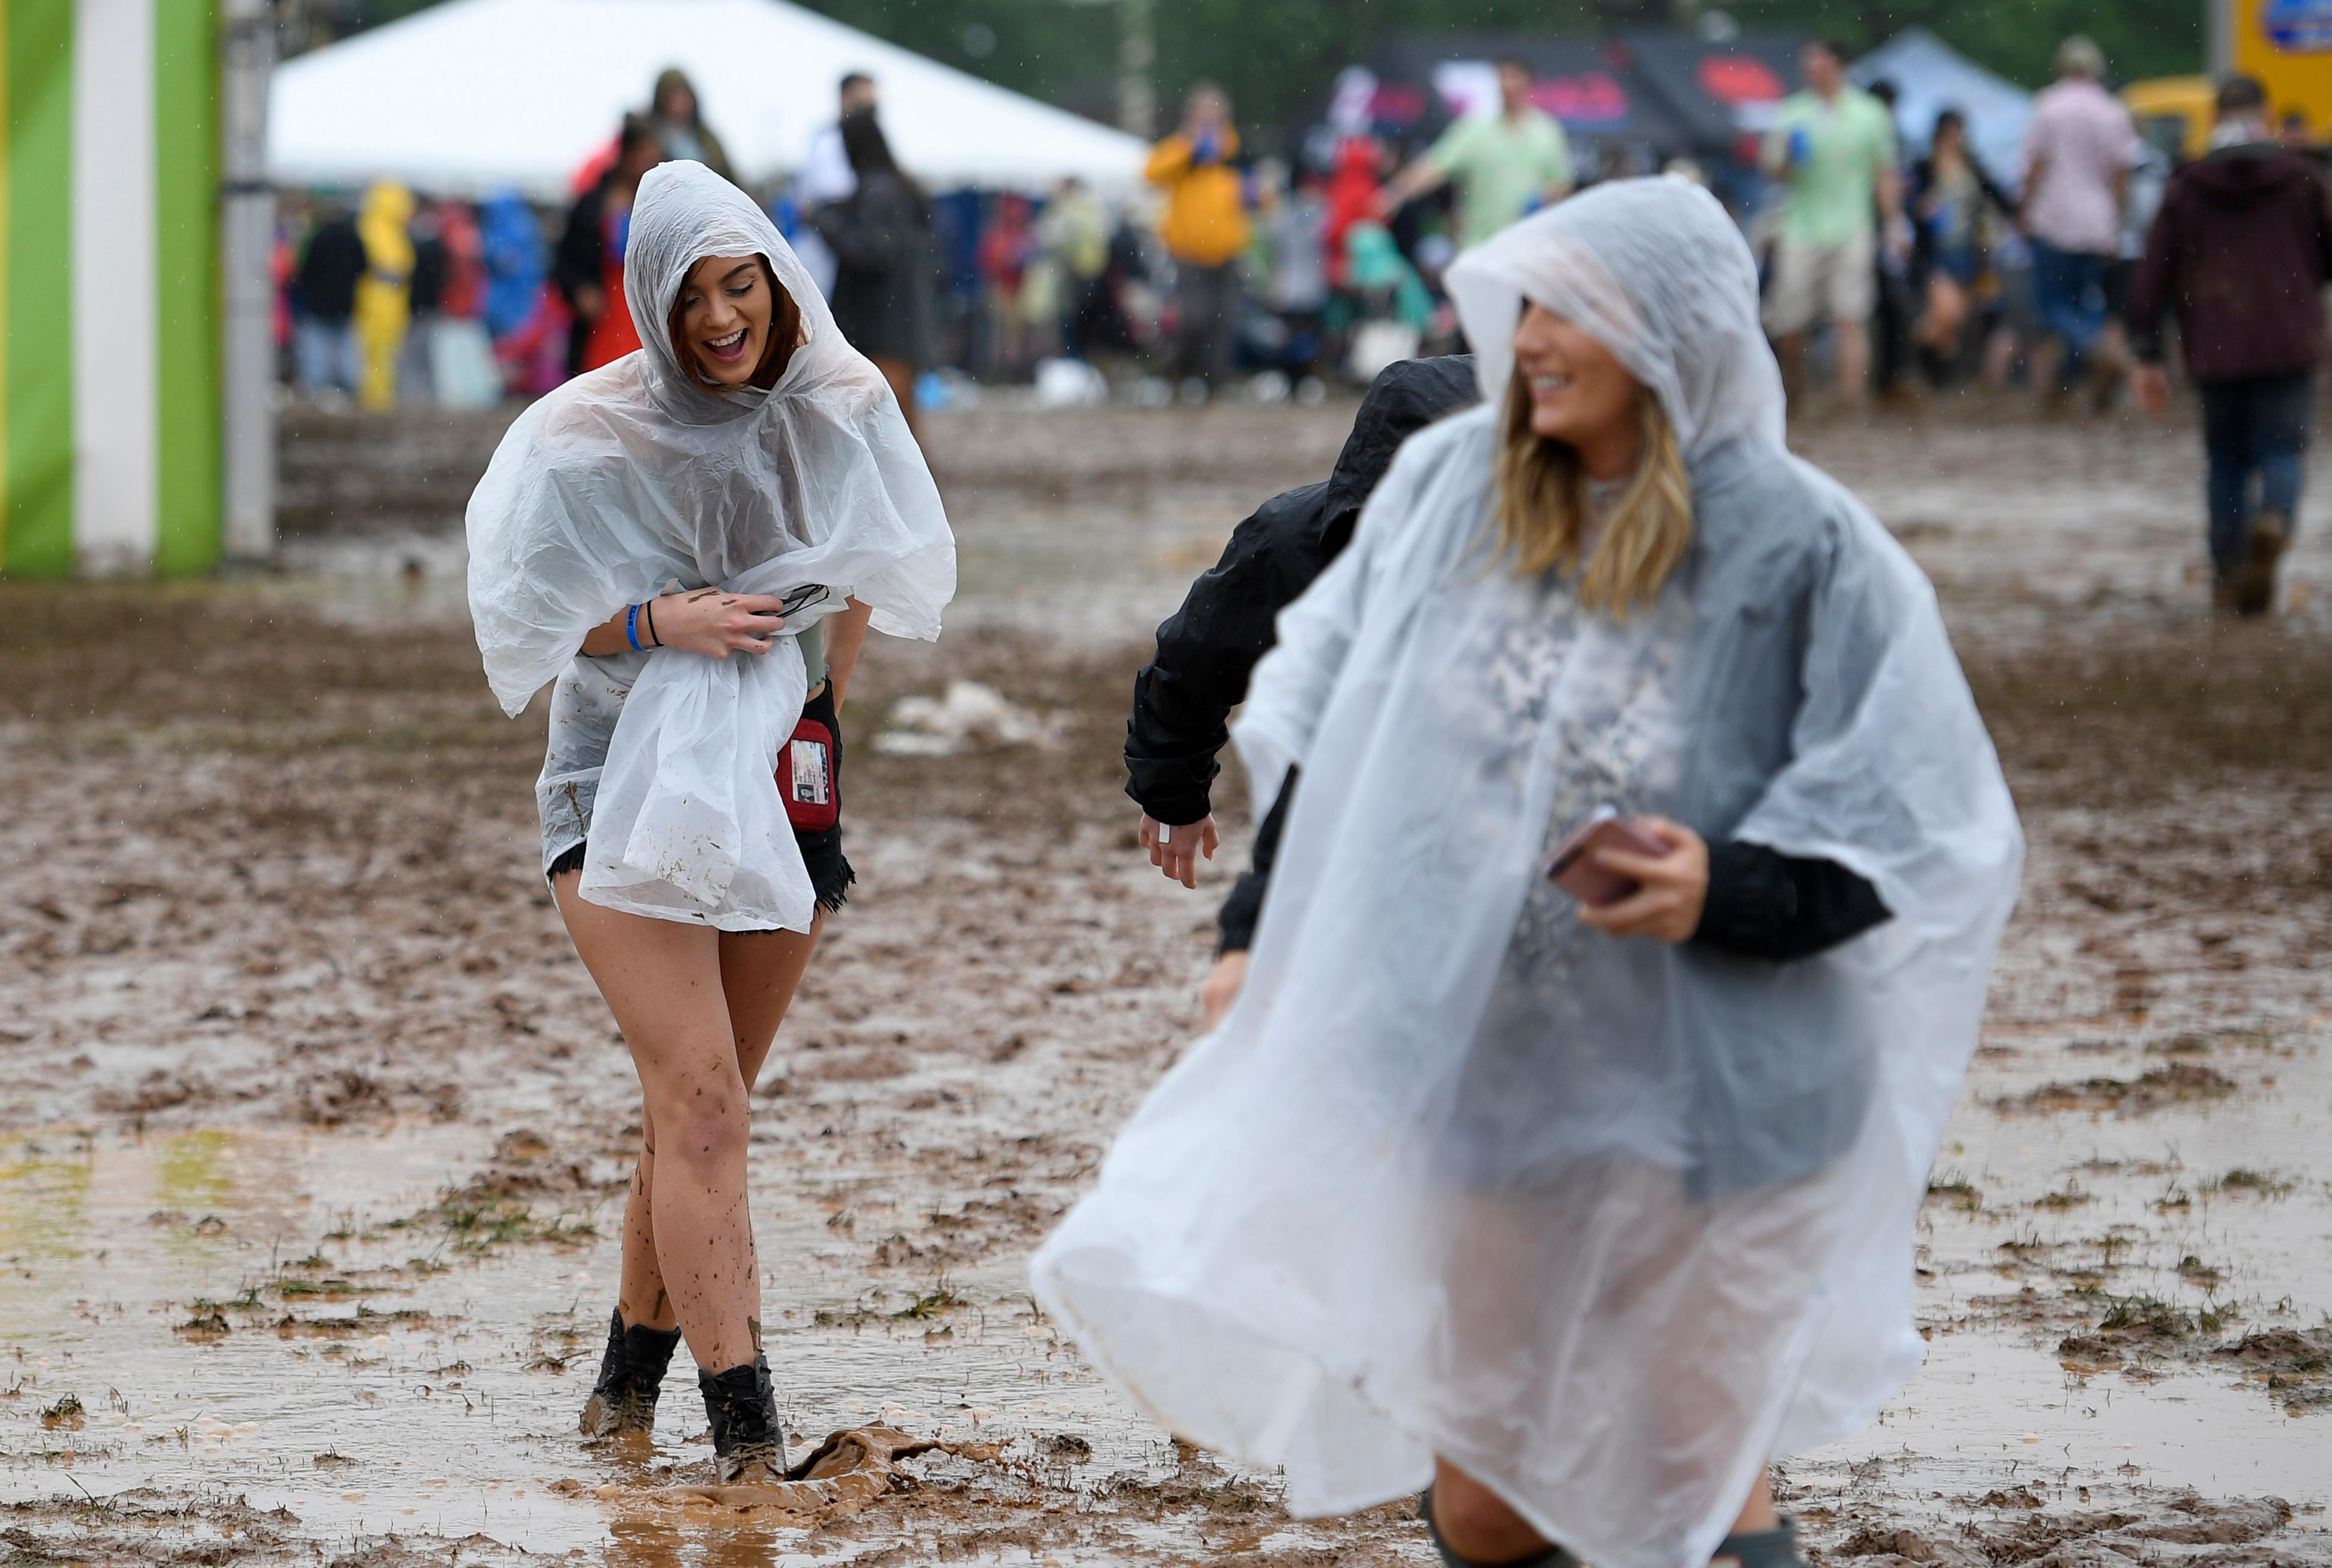 A woman walks through mud in the infield during the 143rd Preakness Stakes horse race at Pimlico race course, Saturday, May 19, 2018, in Baltimore. (AP Photo/Nick Wass)